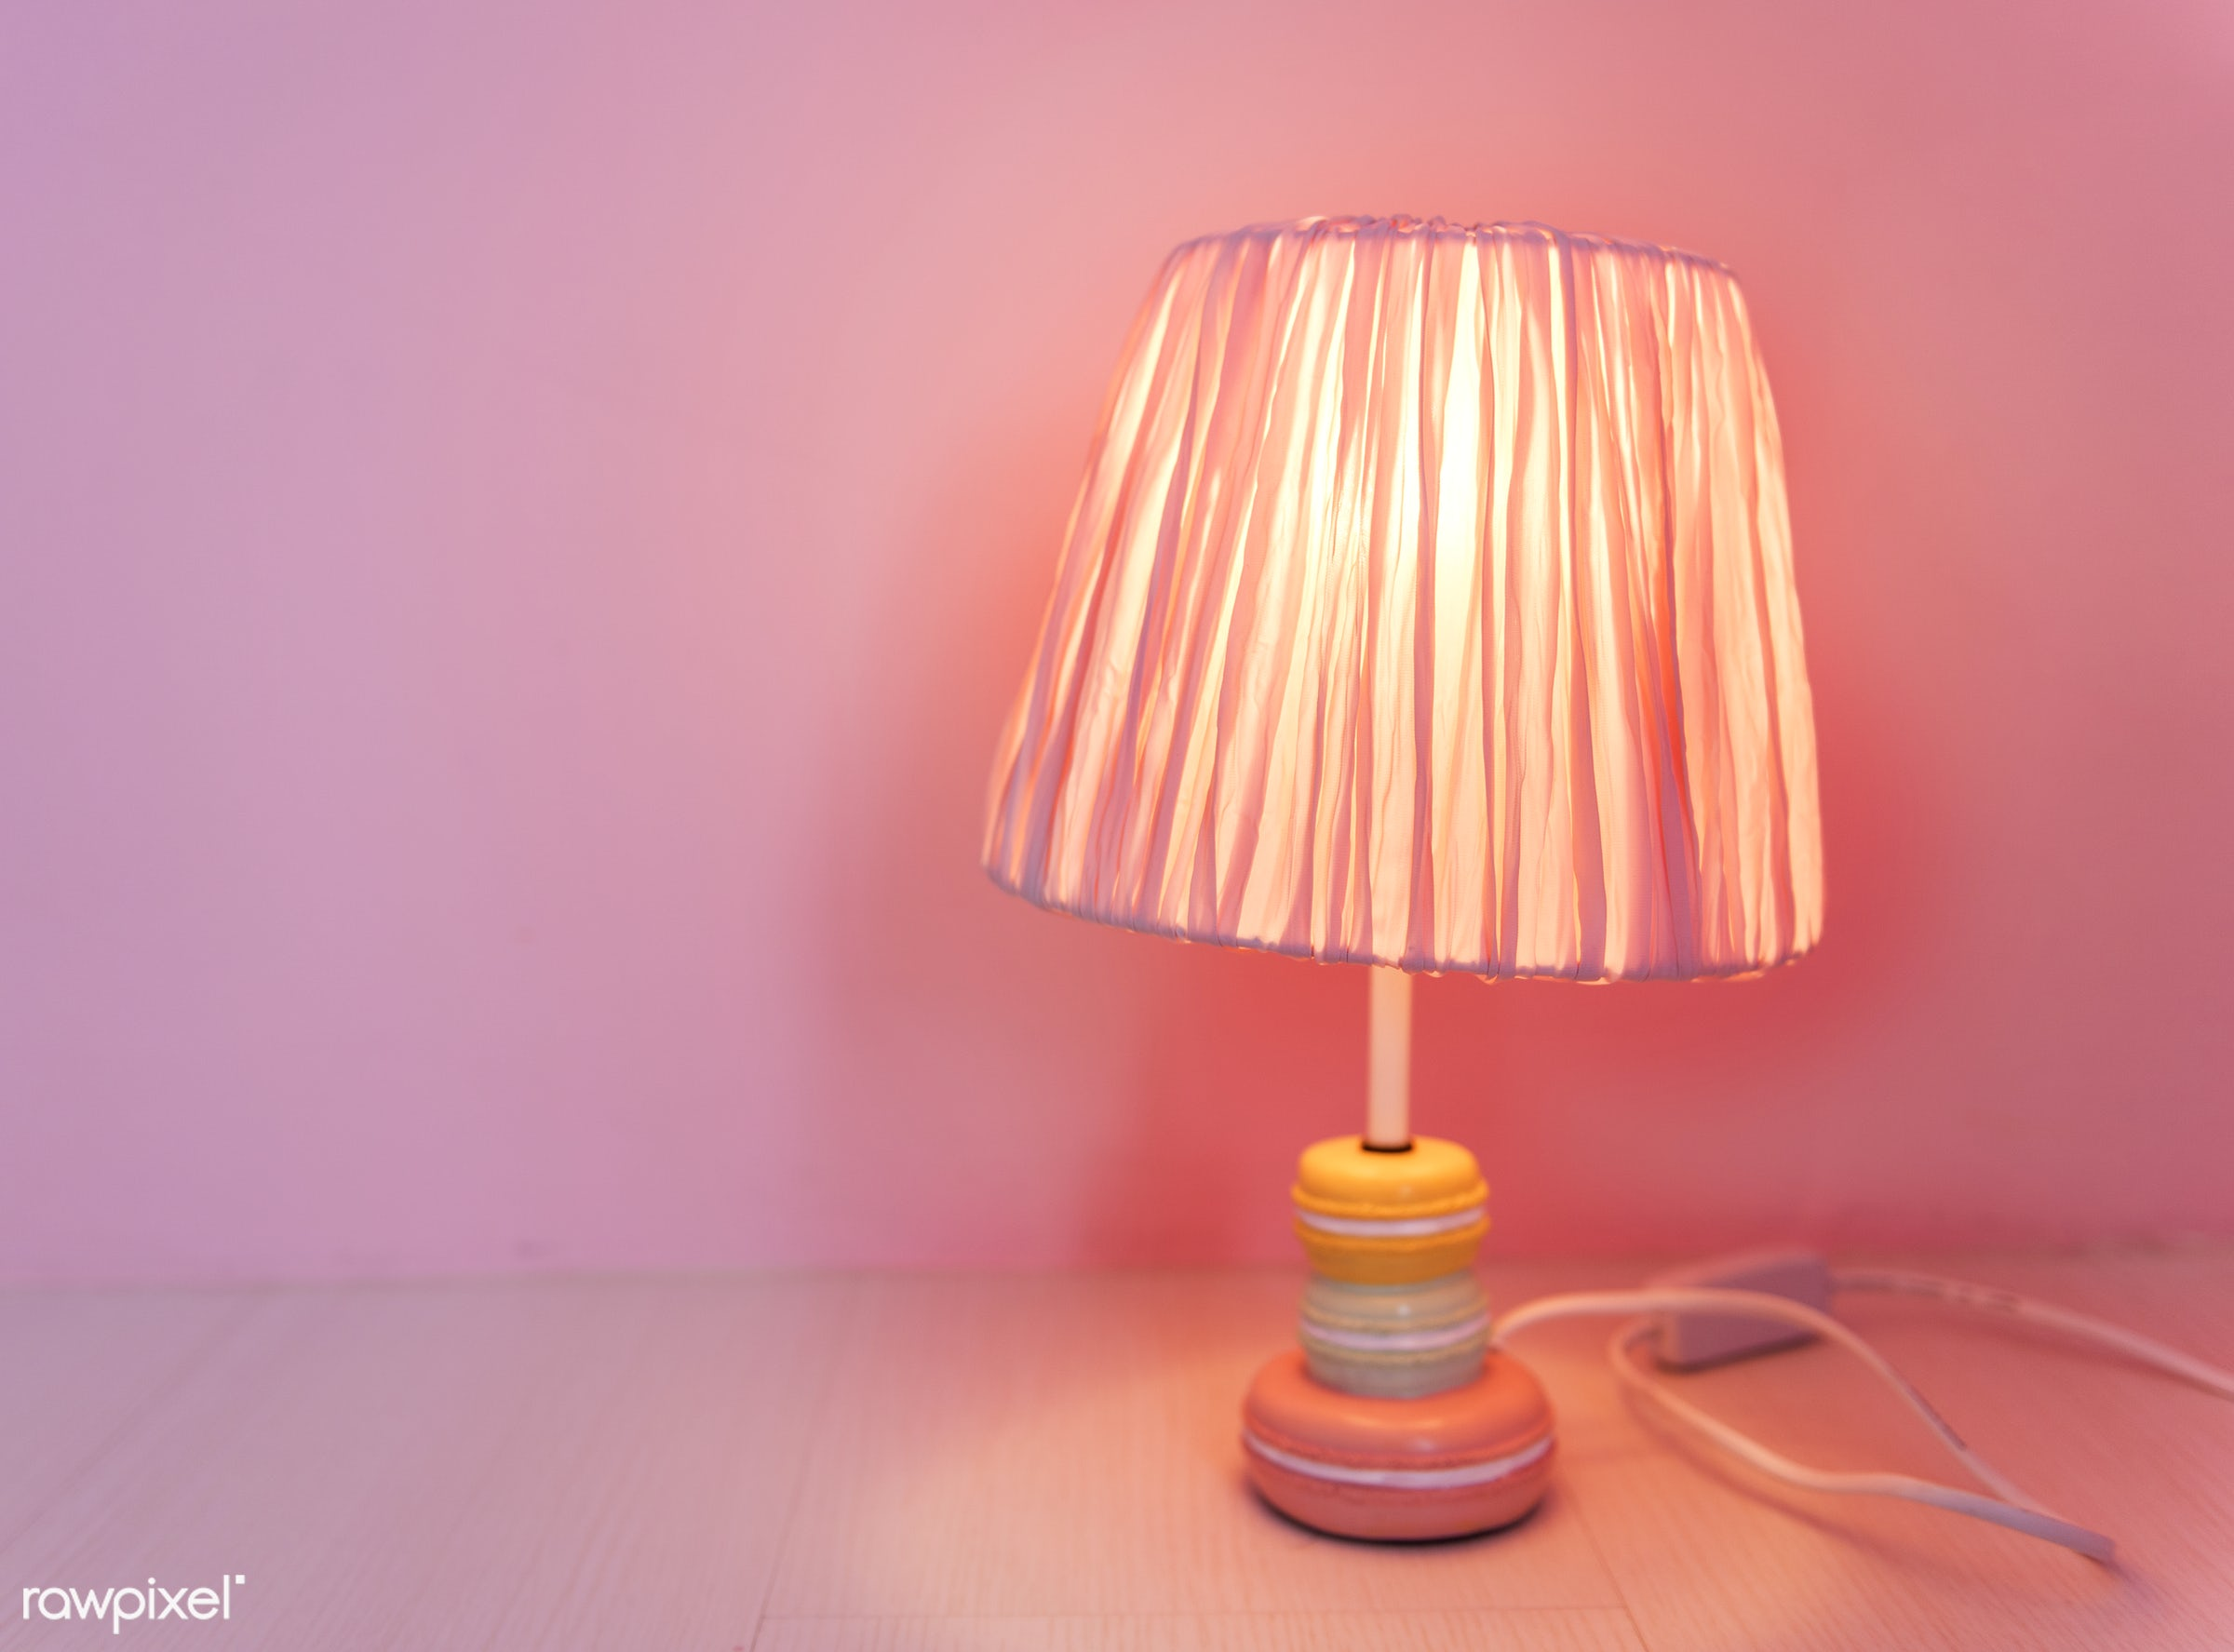 Feminine Style Lamp in a Pink Room - lamp, interior, pink, femininity, light, concept, decoration, design, home, lifestyle...